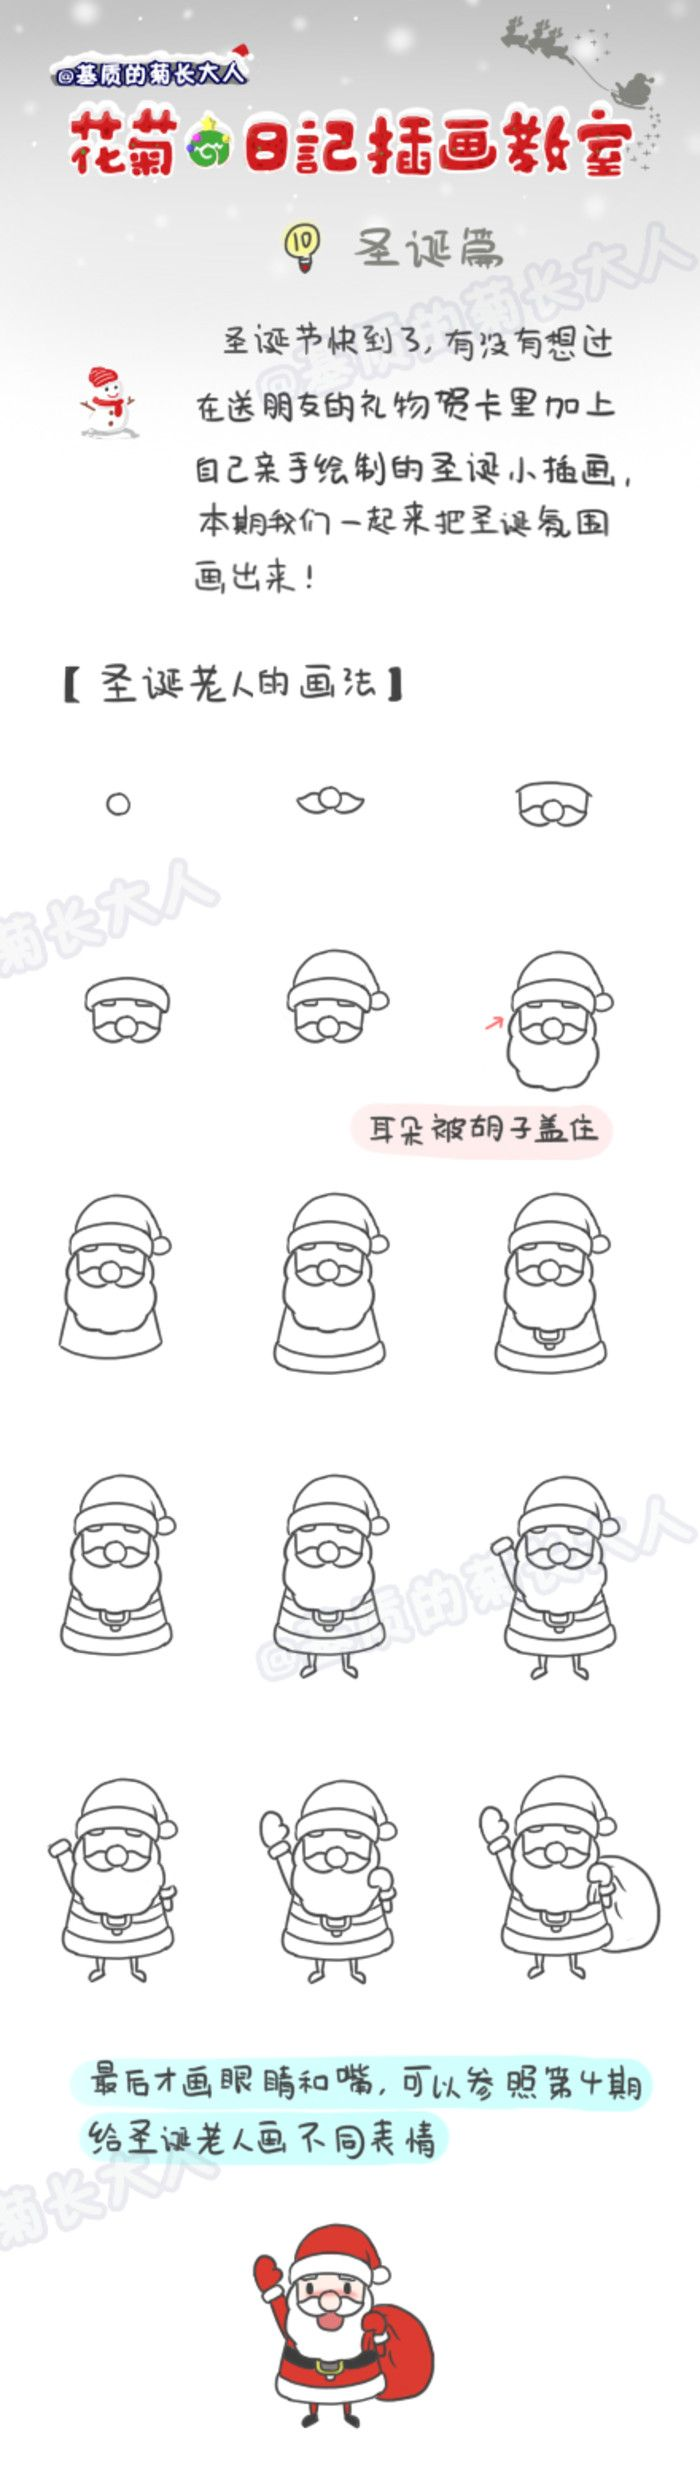 How to draw Santa Claus, chrysanthemum people grow up from a matrix @